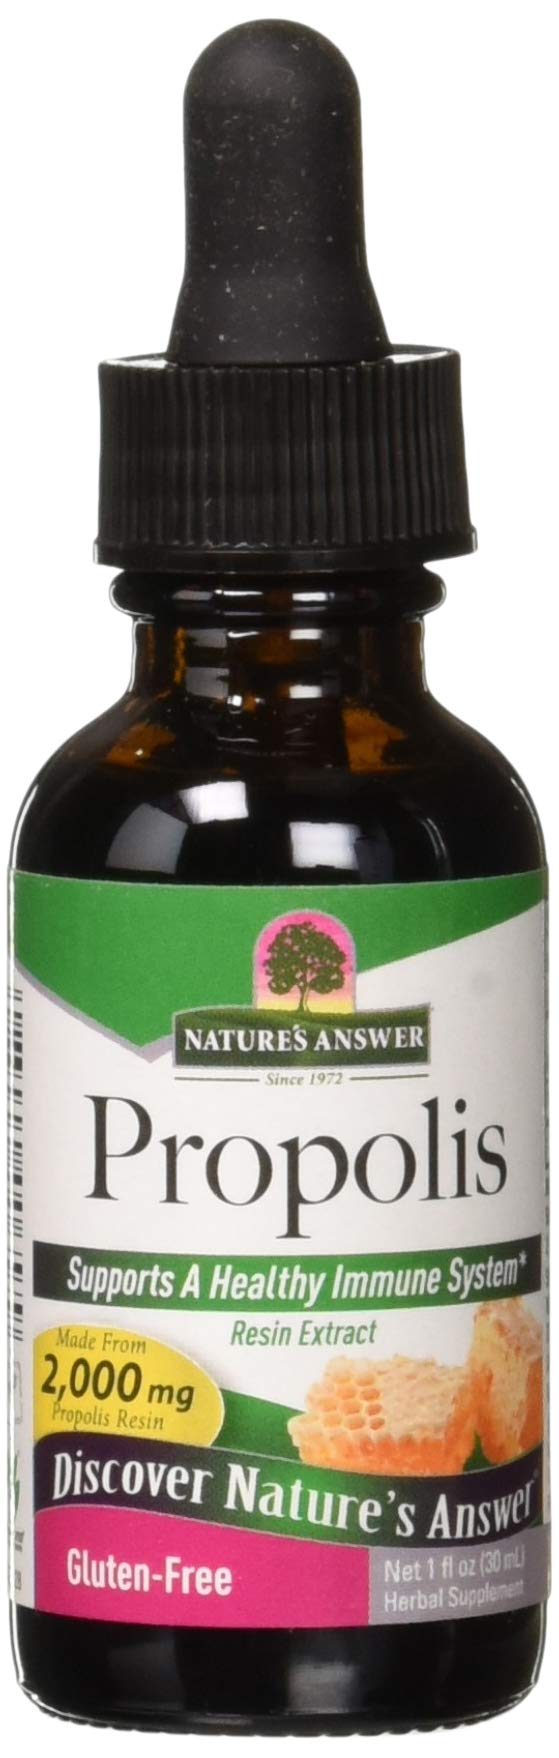 Nature's Answer Propolis Resin Alcohol Free - 1 fl oz